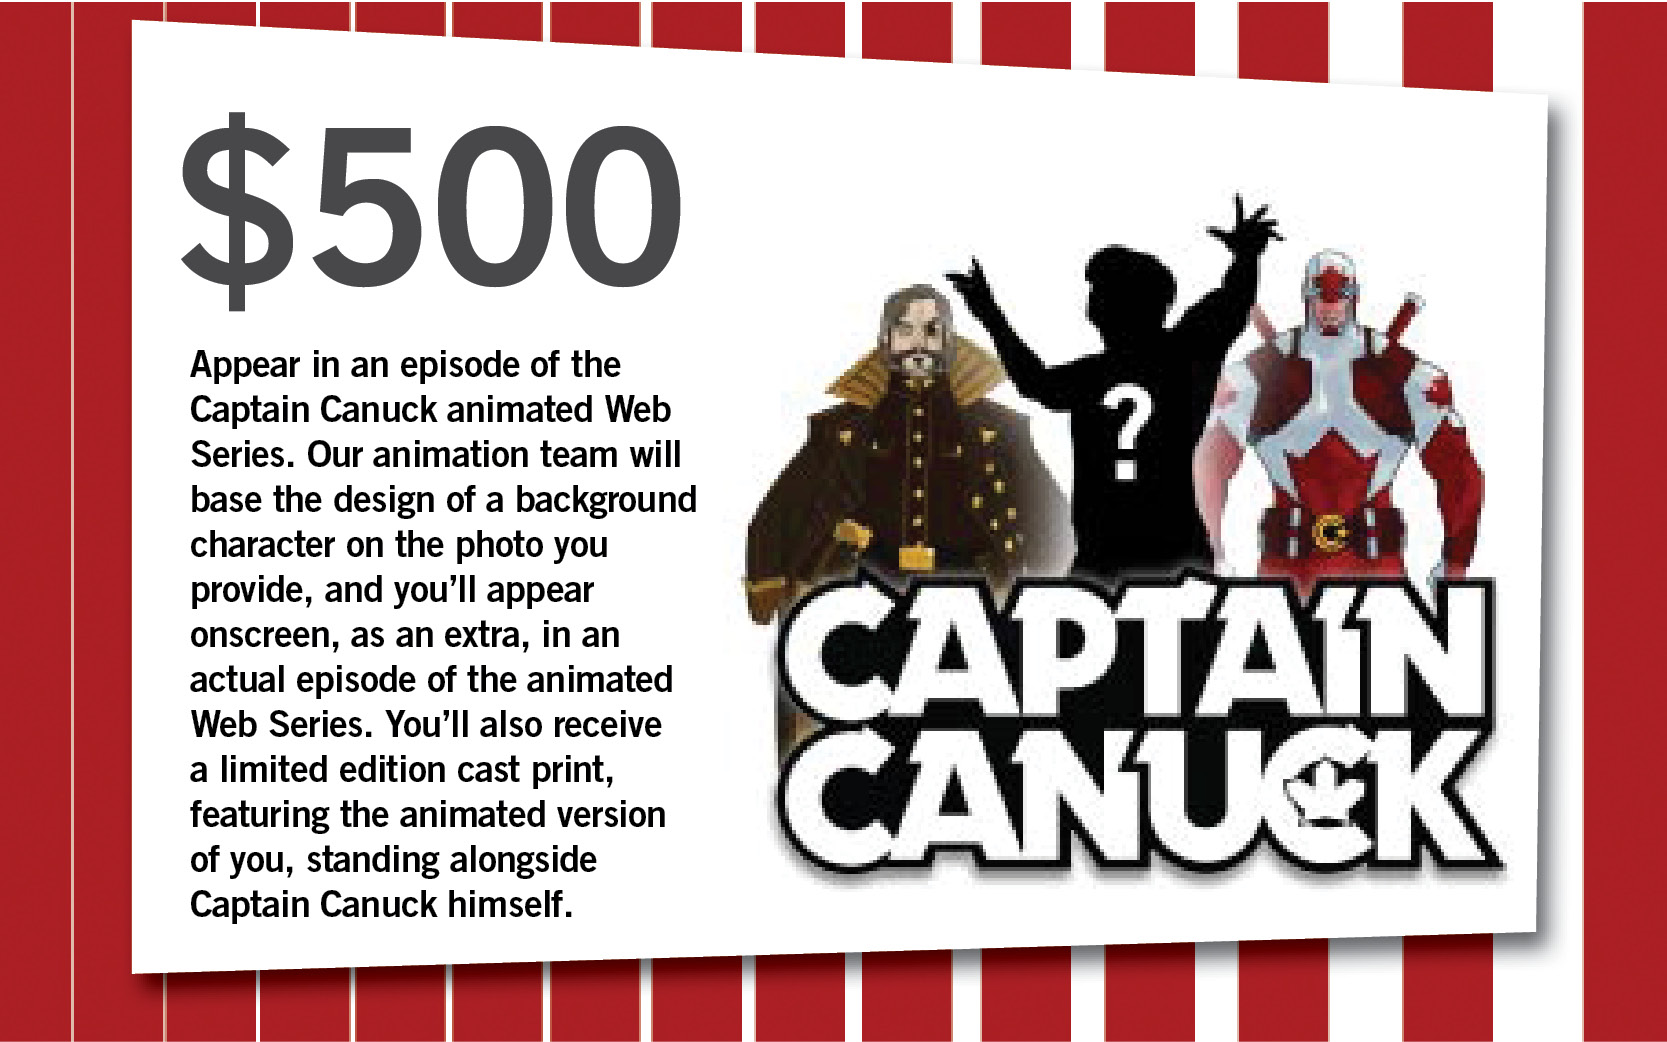 Appear in an episode of the Captain Canuck animated Web Series. Our animation team will base the design of a background character on the photo you provide, and you'll appear onscreen, as an extra, in an actual episode of the animated Web Series. You'll also receive a limited edition cast print, featuring the animated version of you, standing alongside Captain Canuck himself.